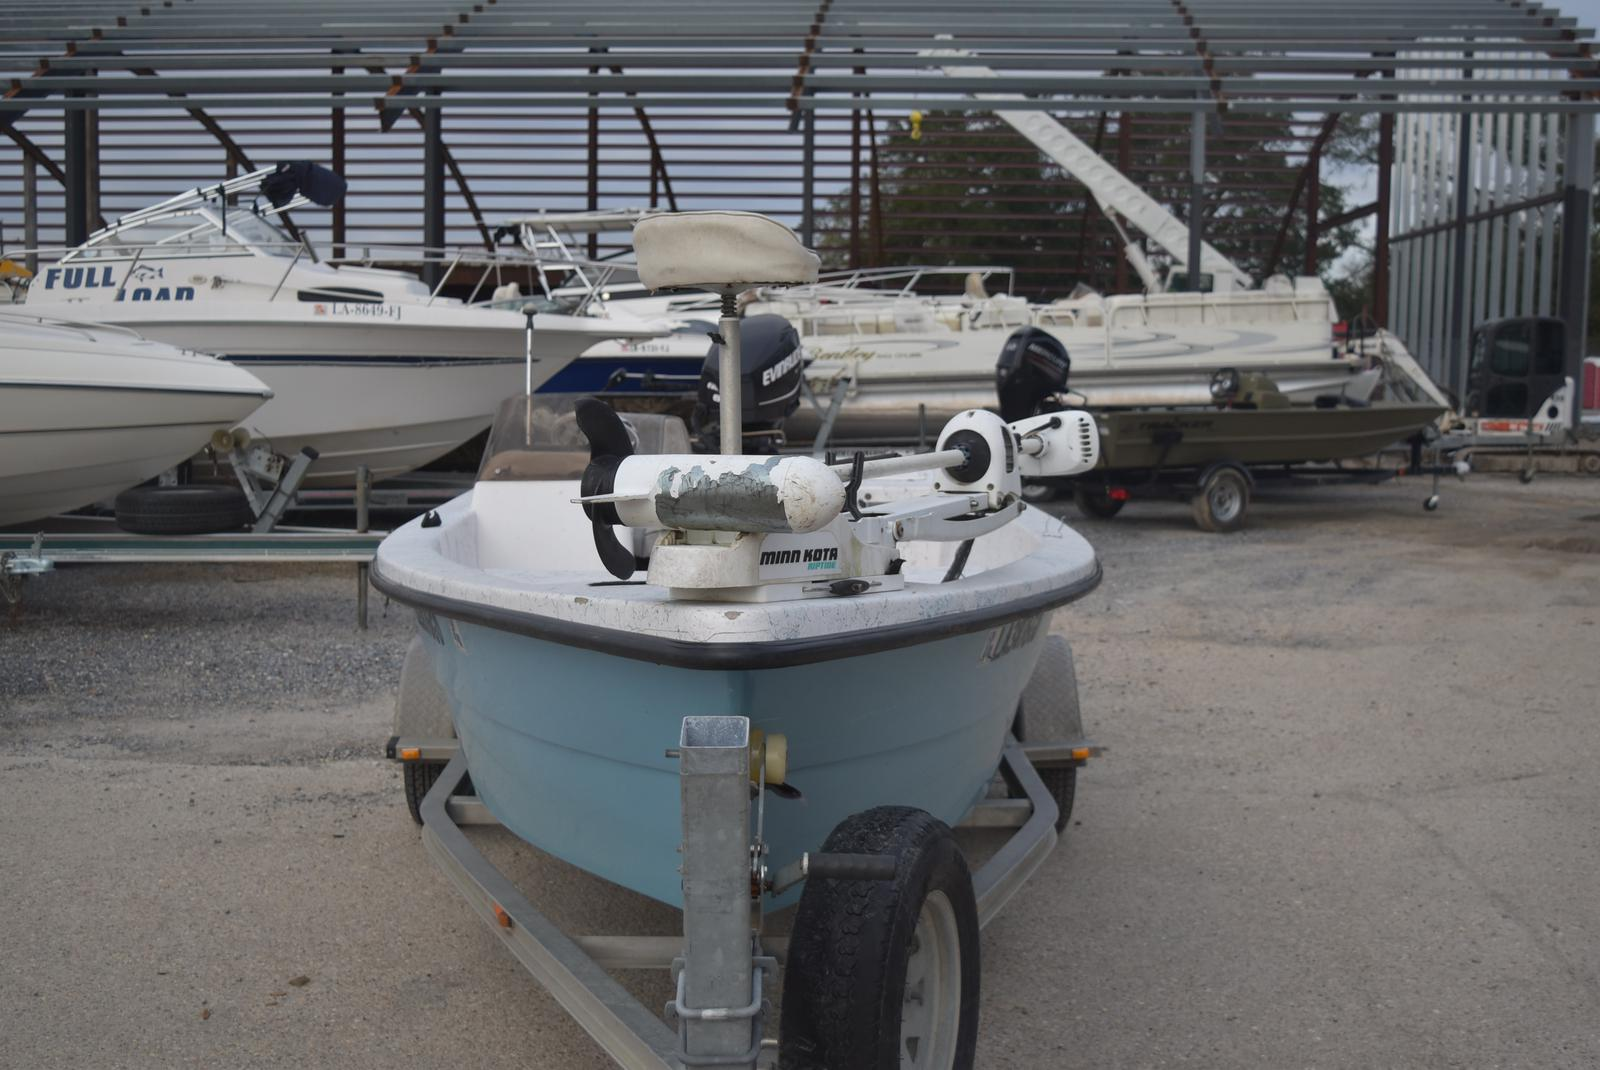 2012 Stumpnocker boat for sale, model of the boat is 17 Stumpnocker & Image # 7 of 7